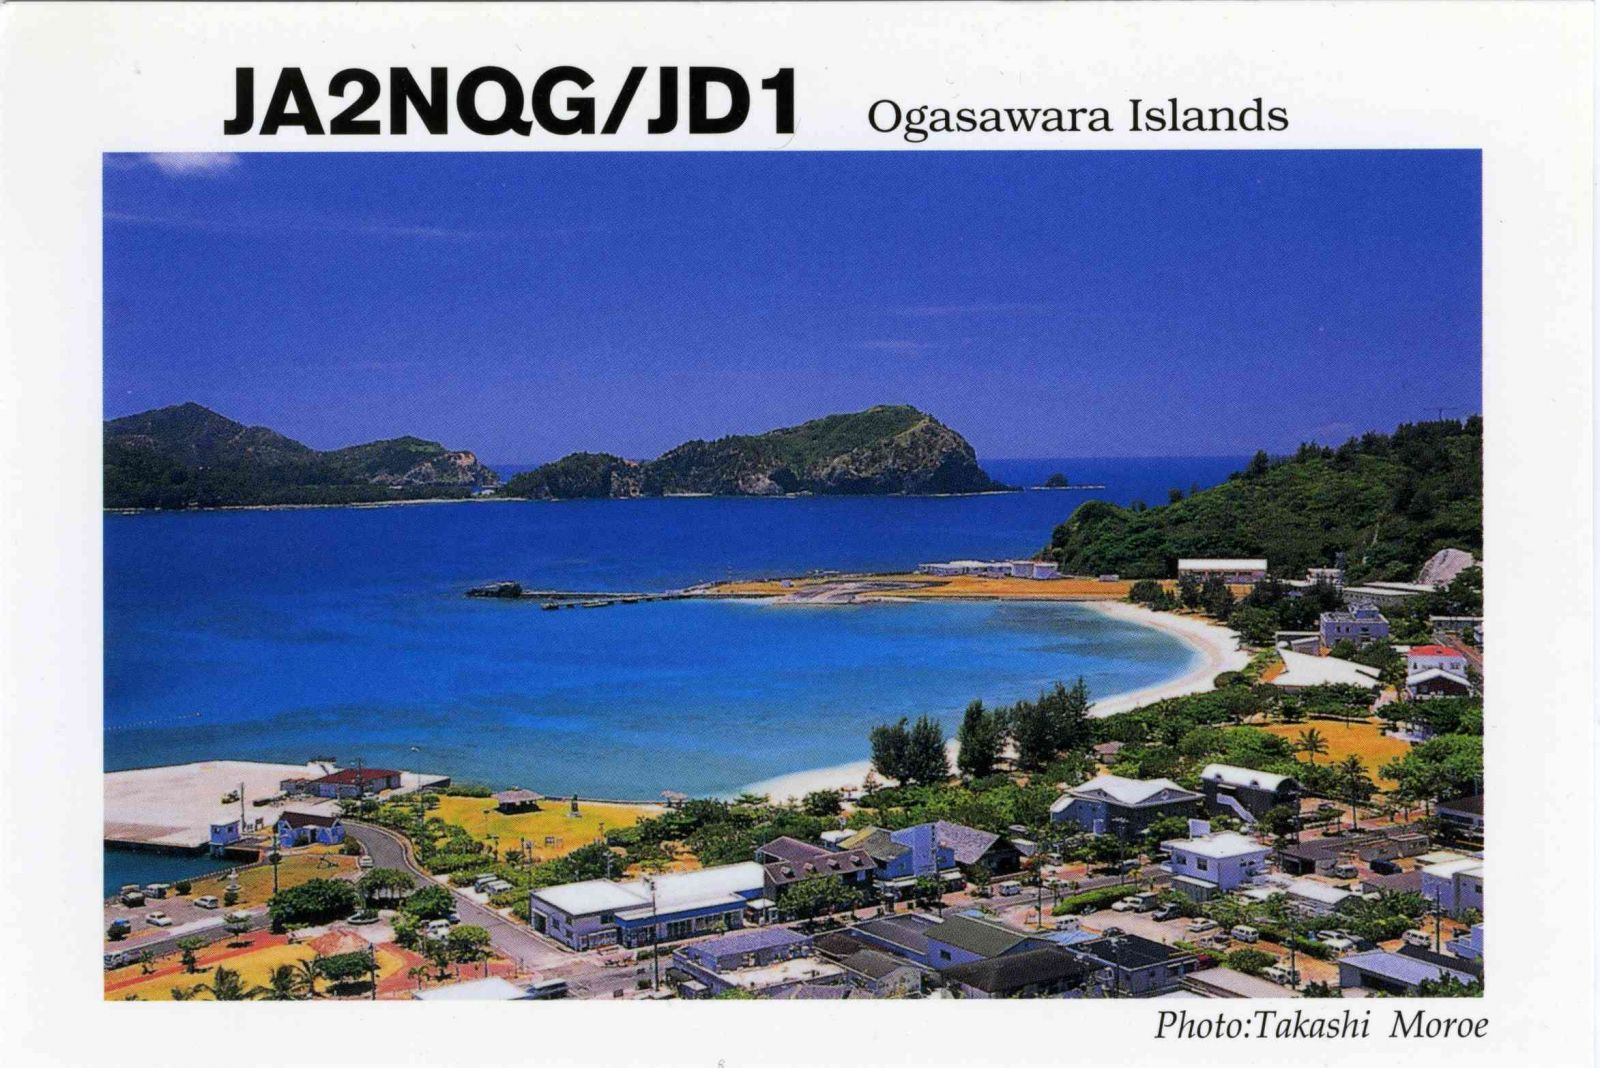 Ogasawara Islands JD1AAI